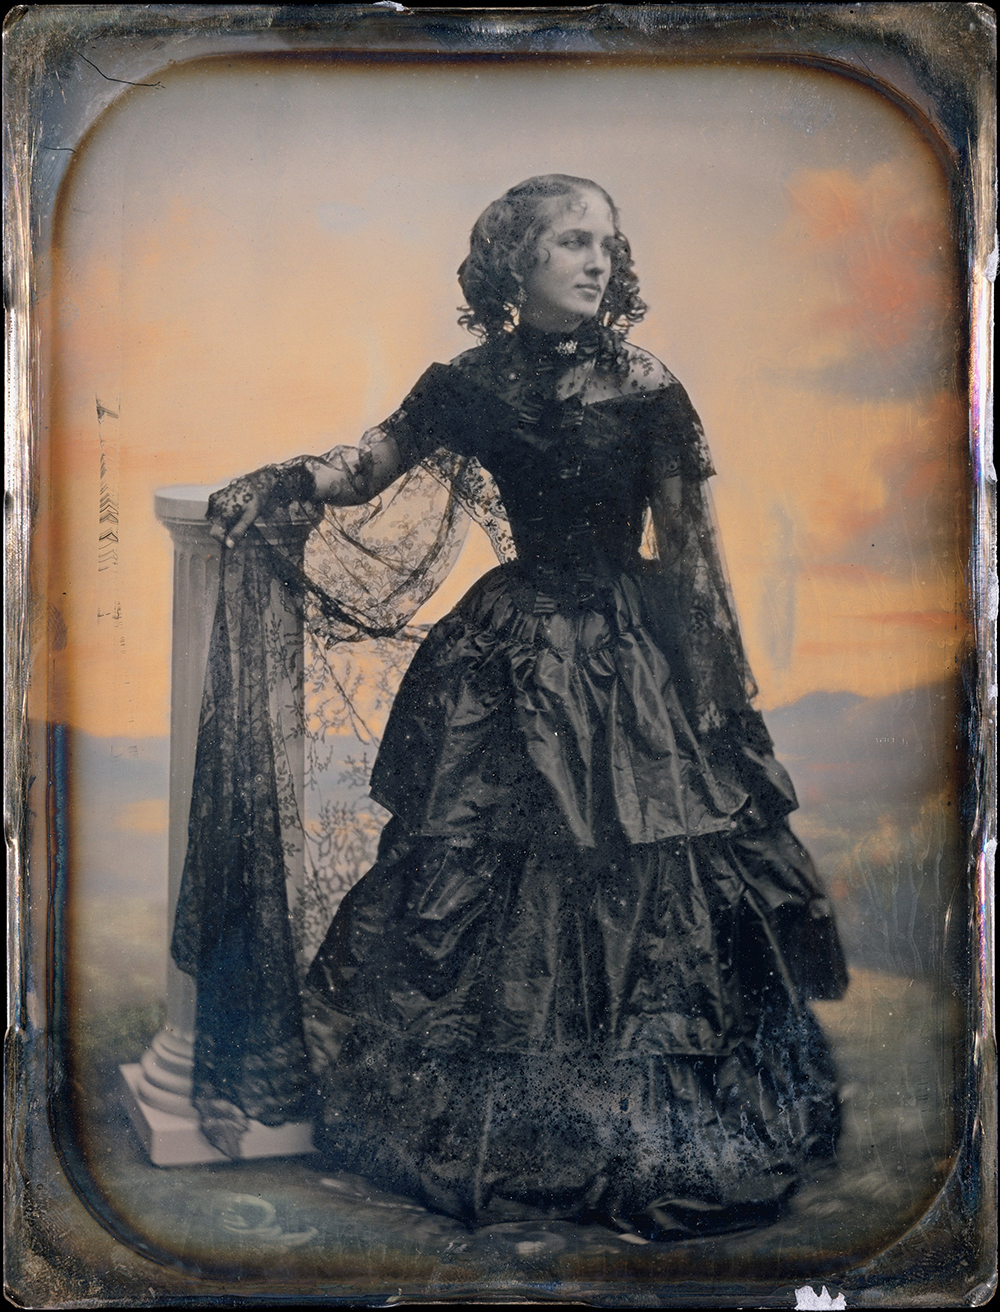 Photograph of woman in black taffeta dress and lace shawl by Southworth and Hawes, c. 1850.